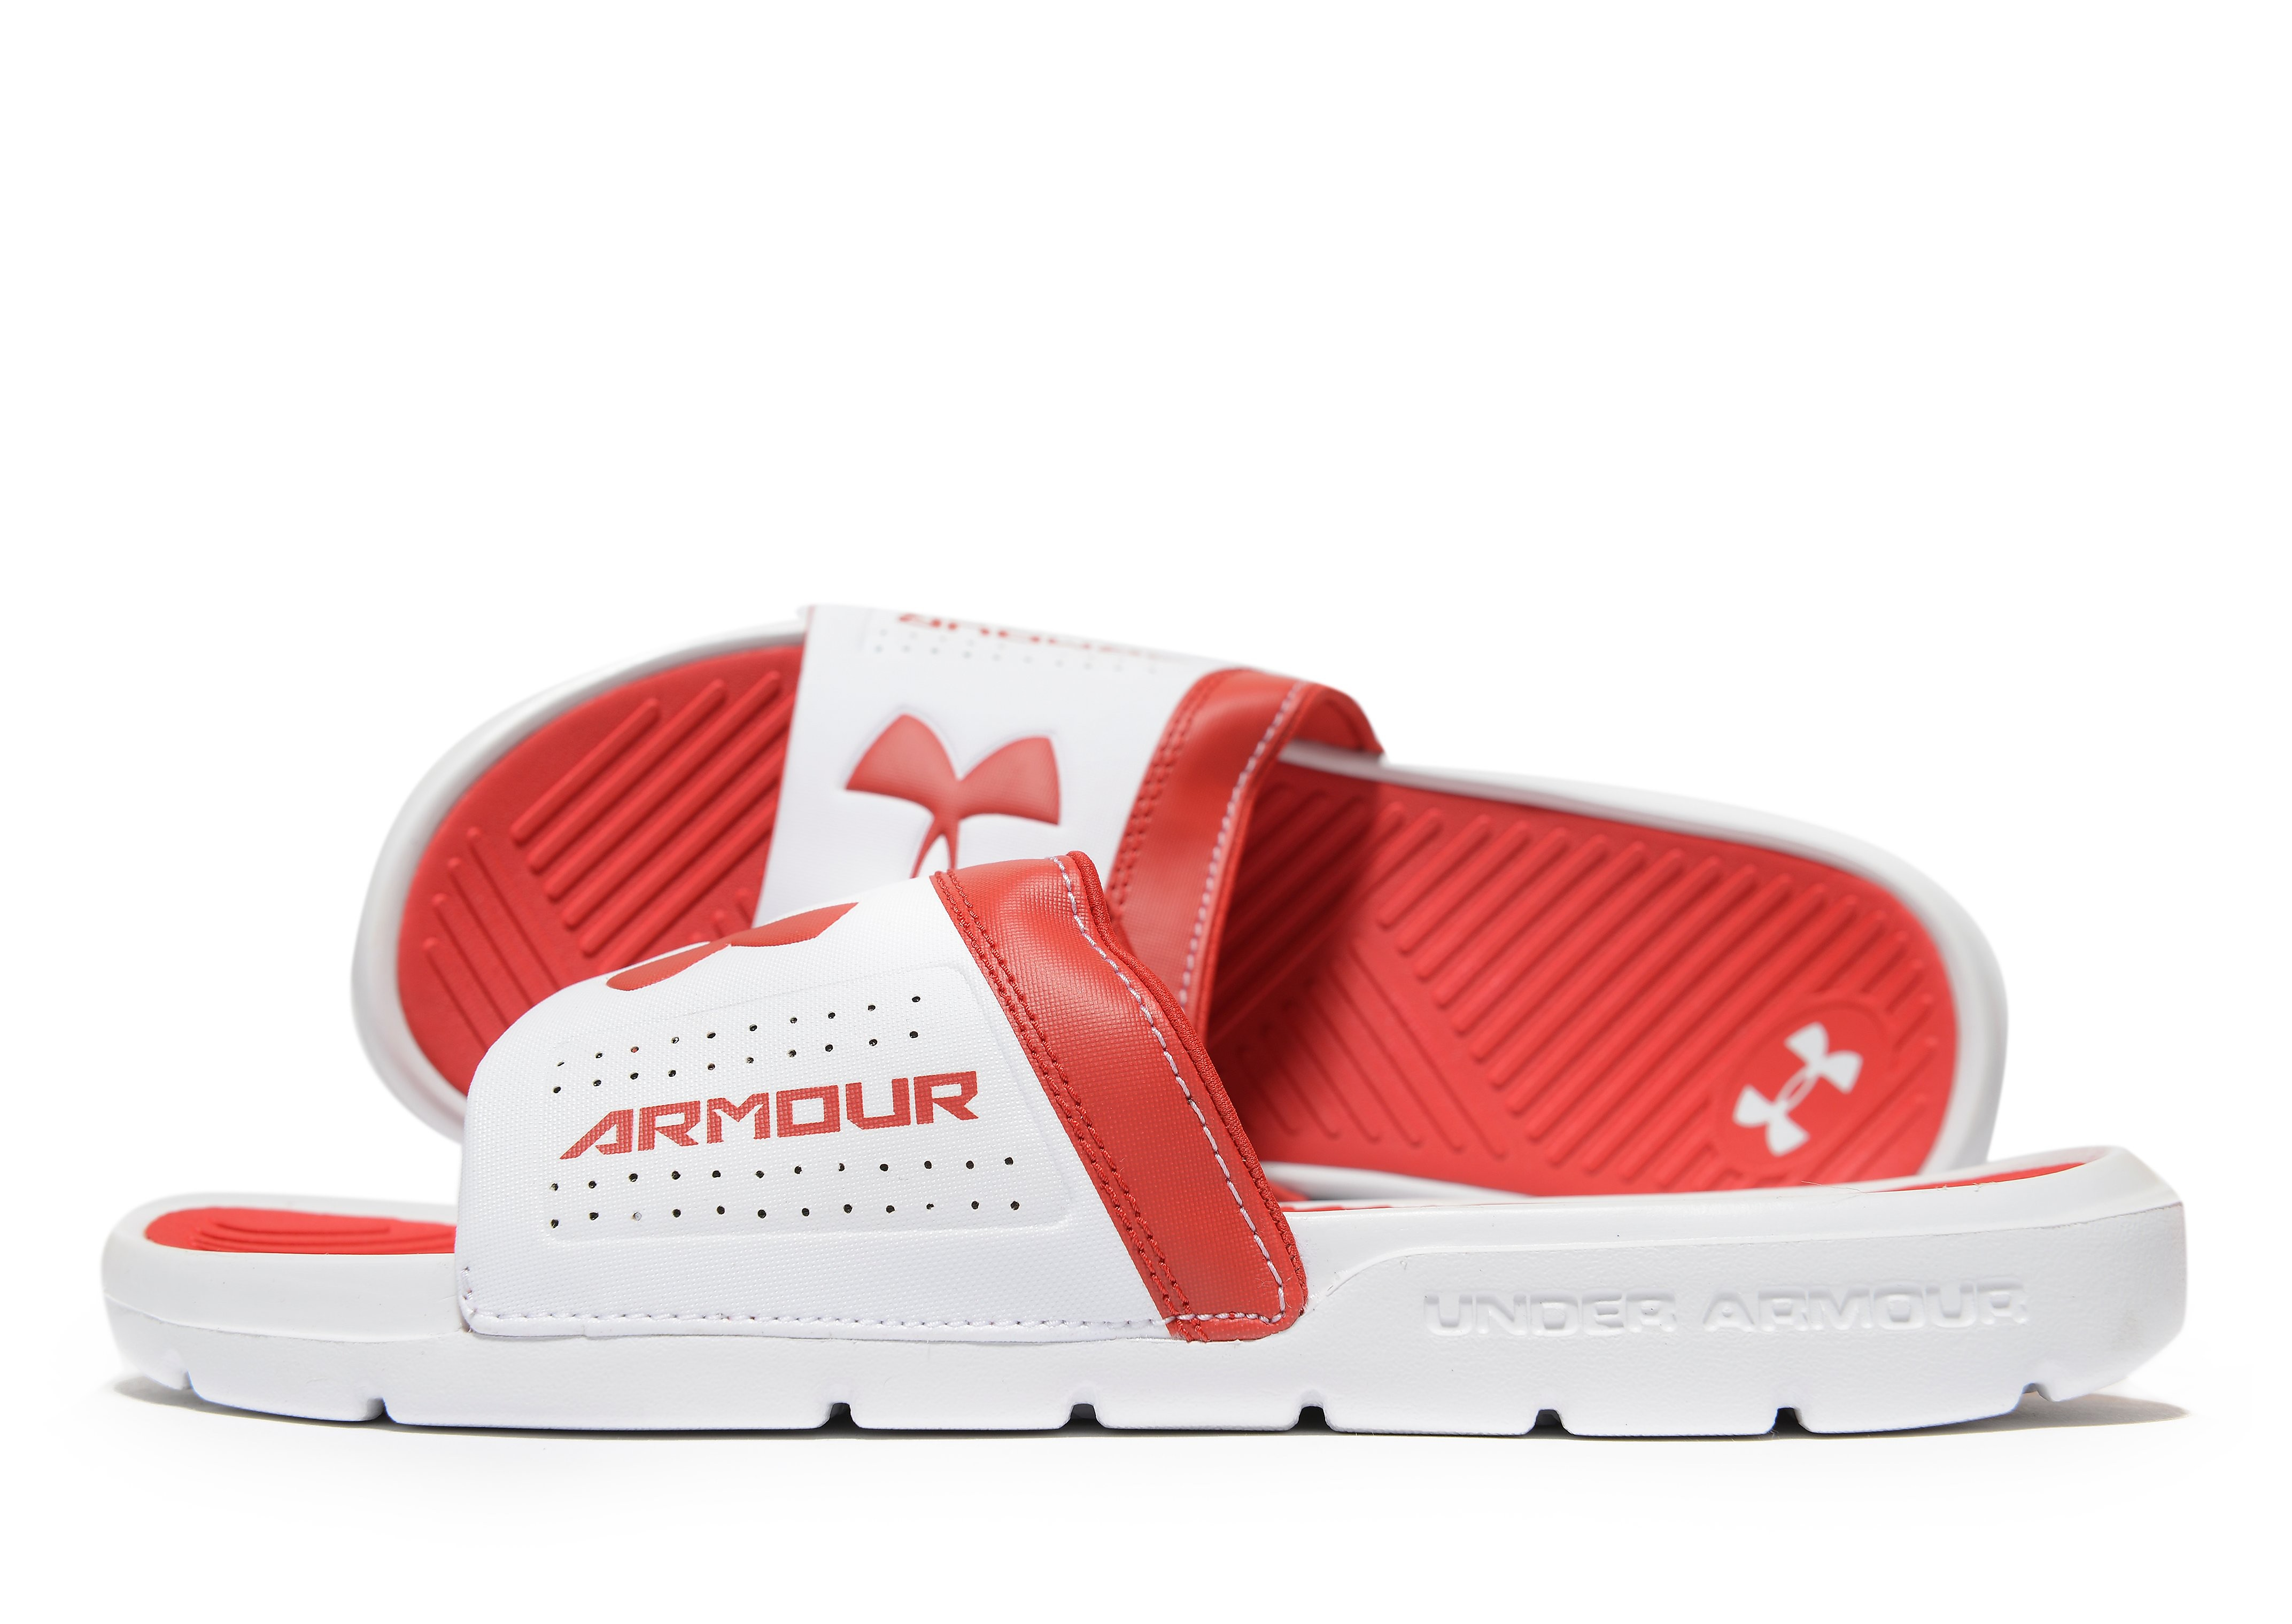 Under Armour Playmaker Slides